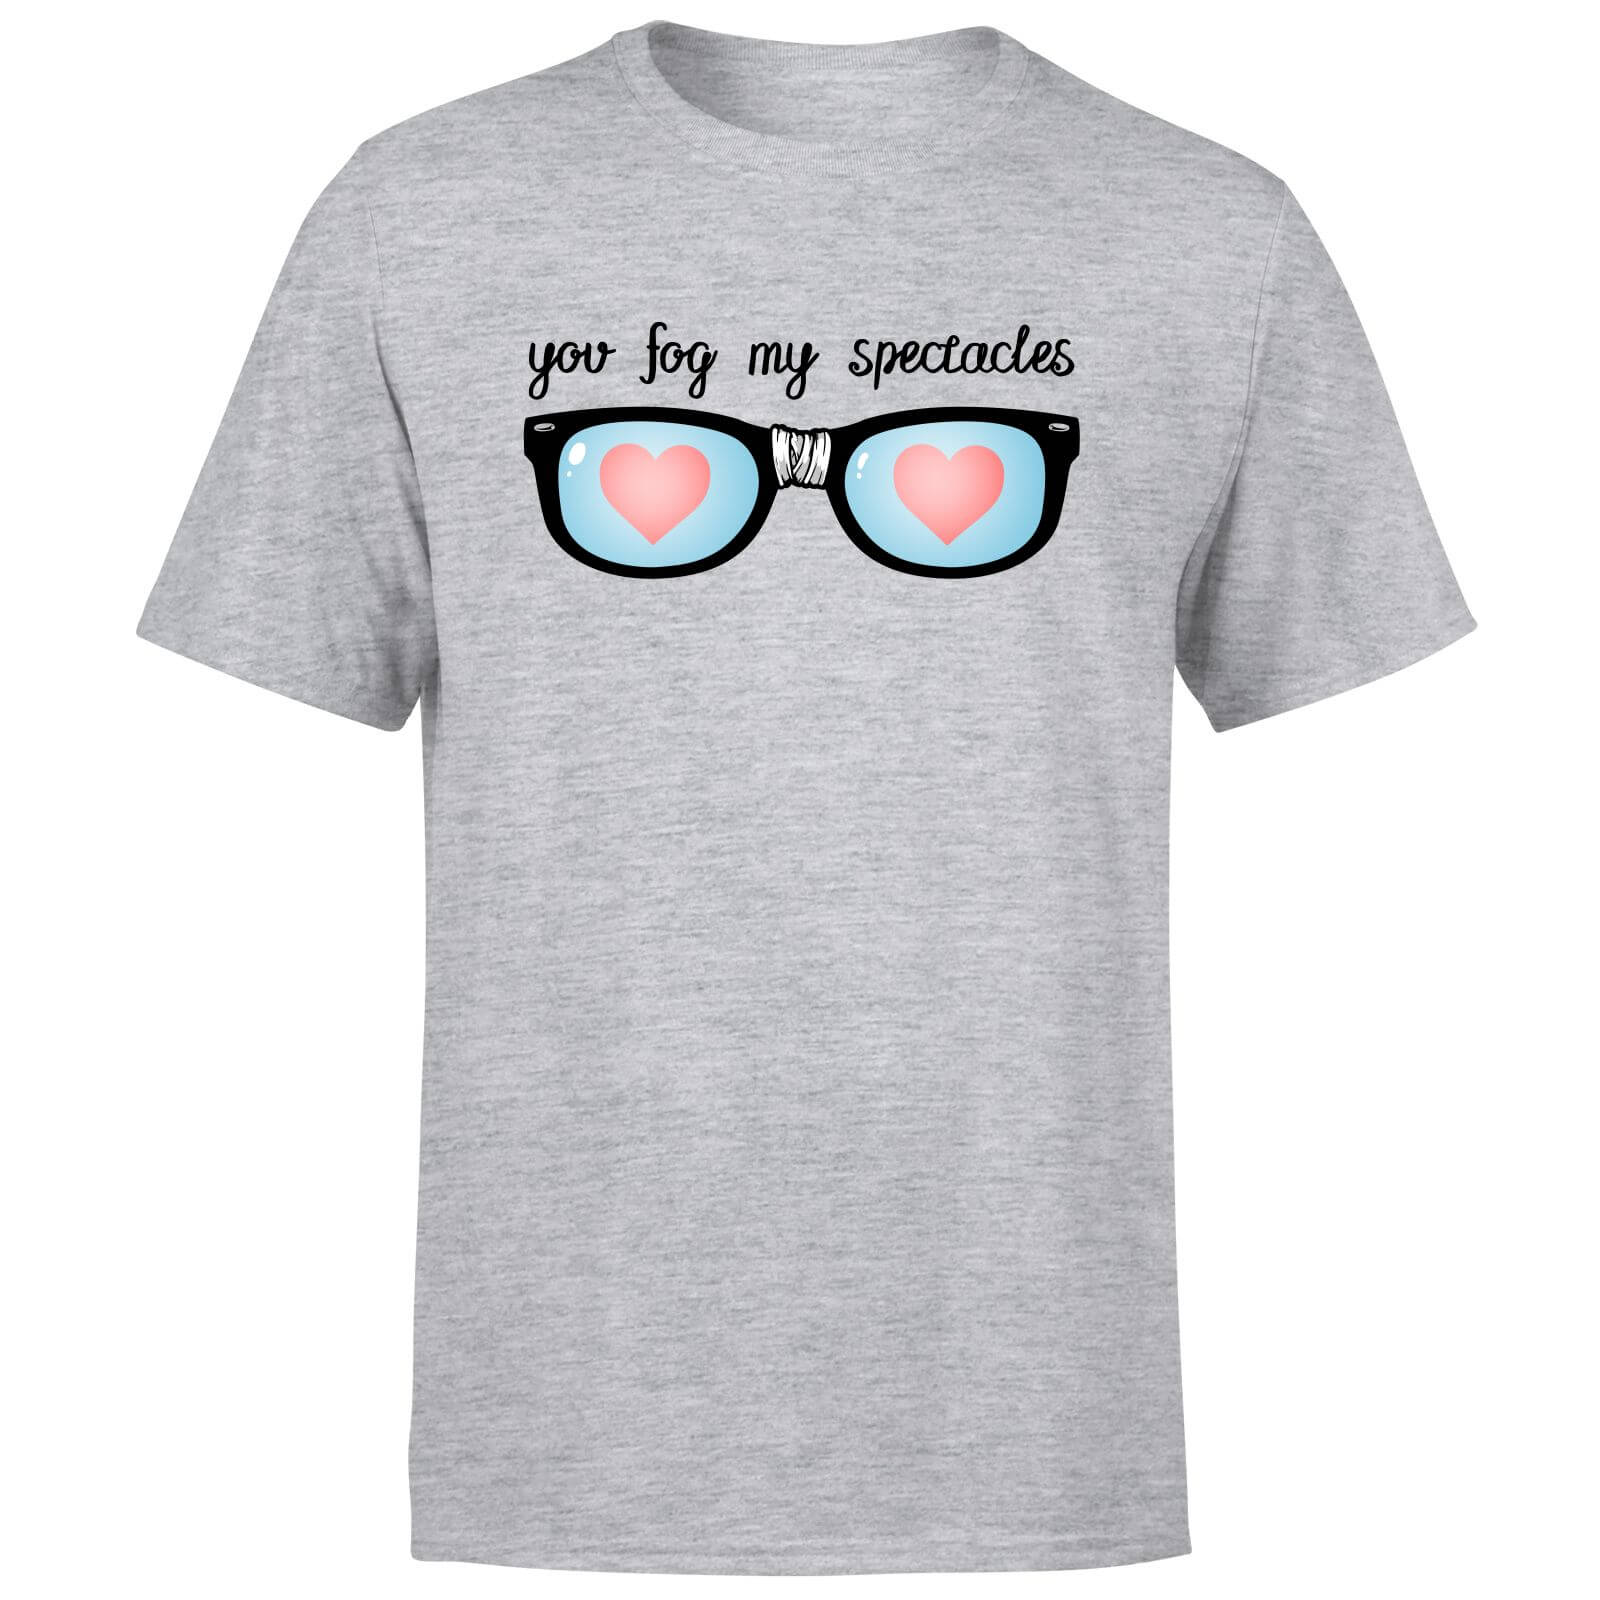 You Fog My Spectacles T-Shirt - Grey